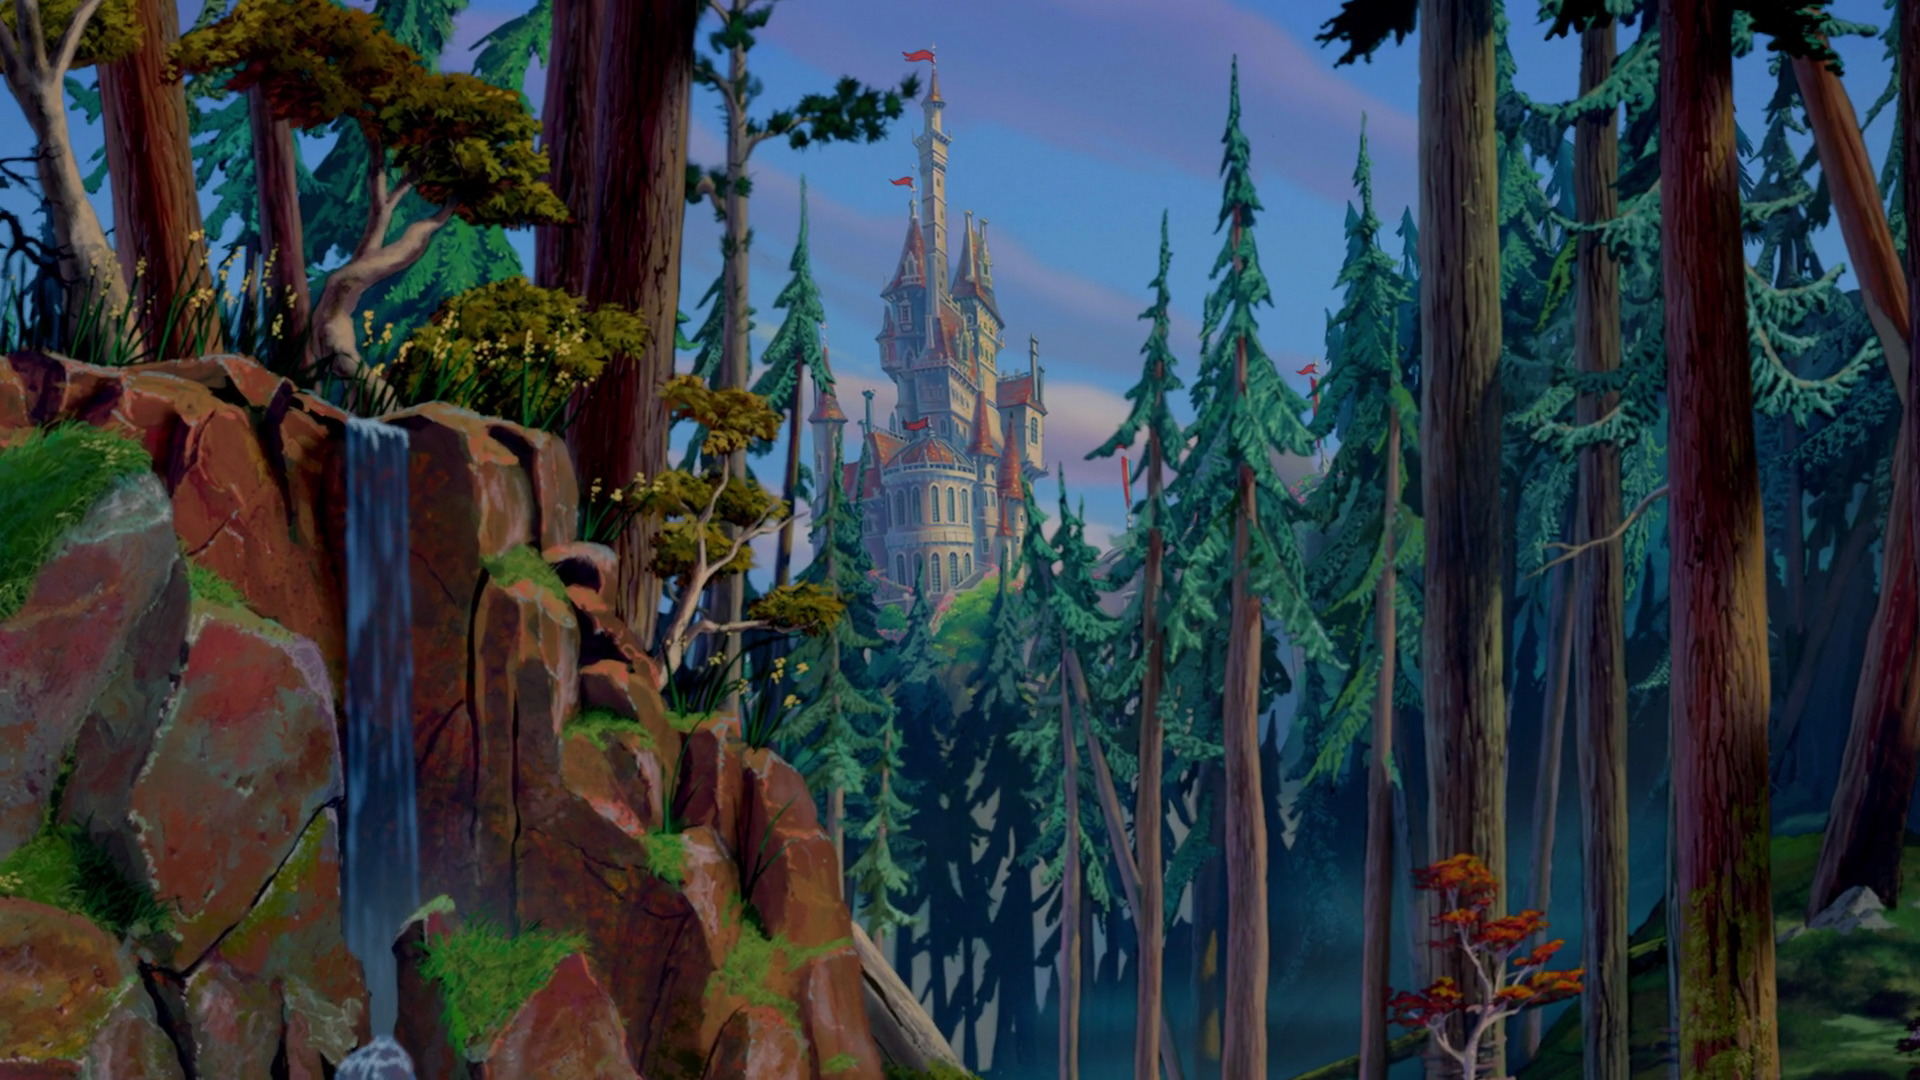 Beast's castle clipart - Clipground Beauty And The Beast Castle